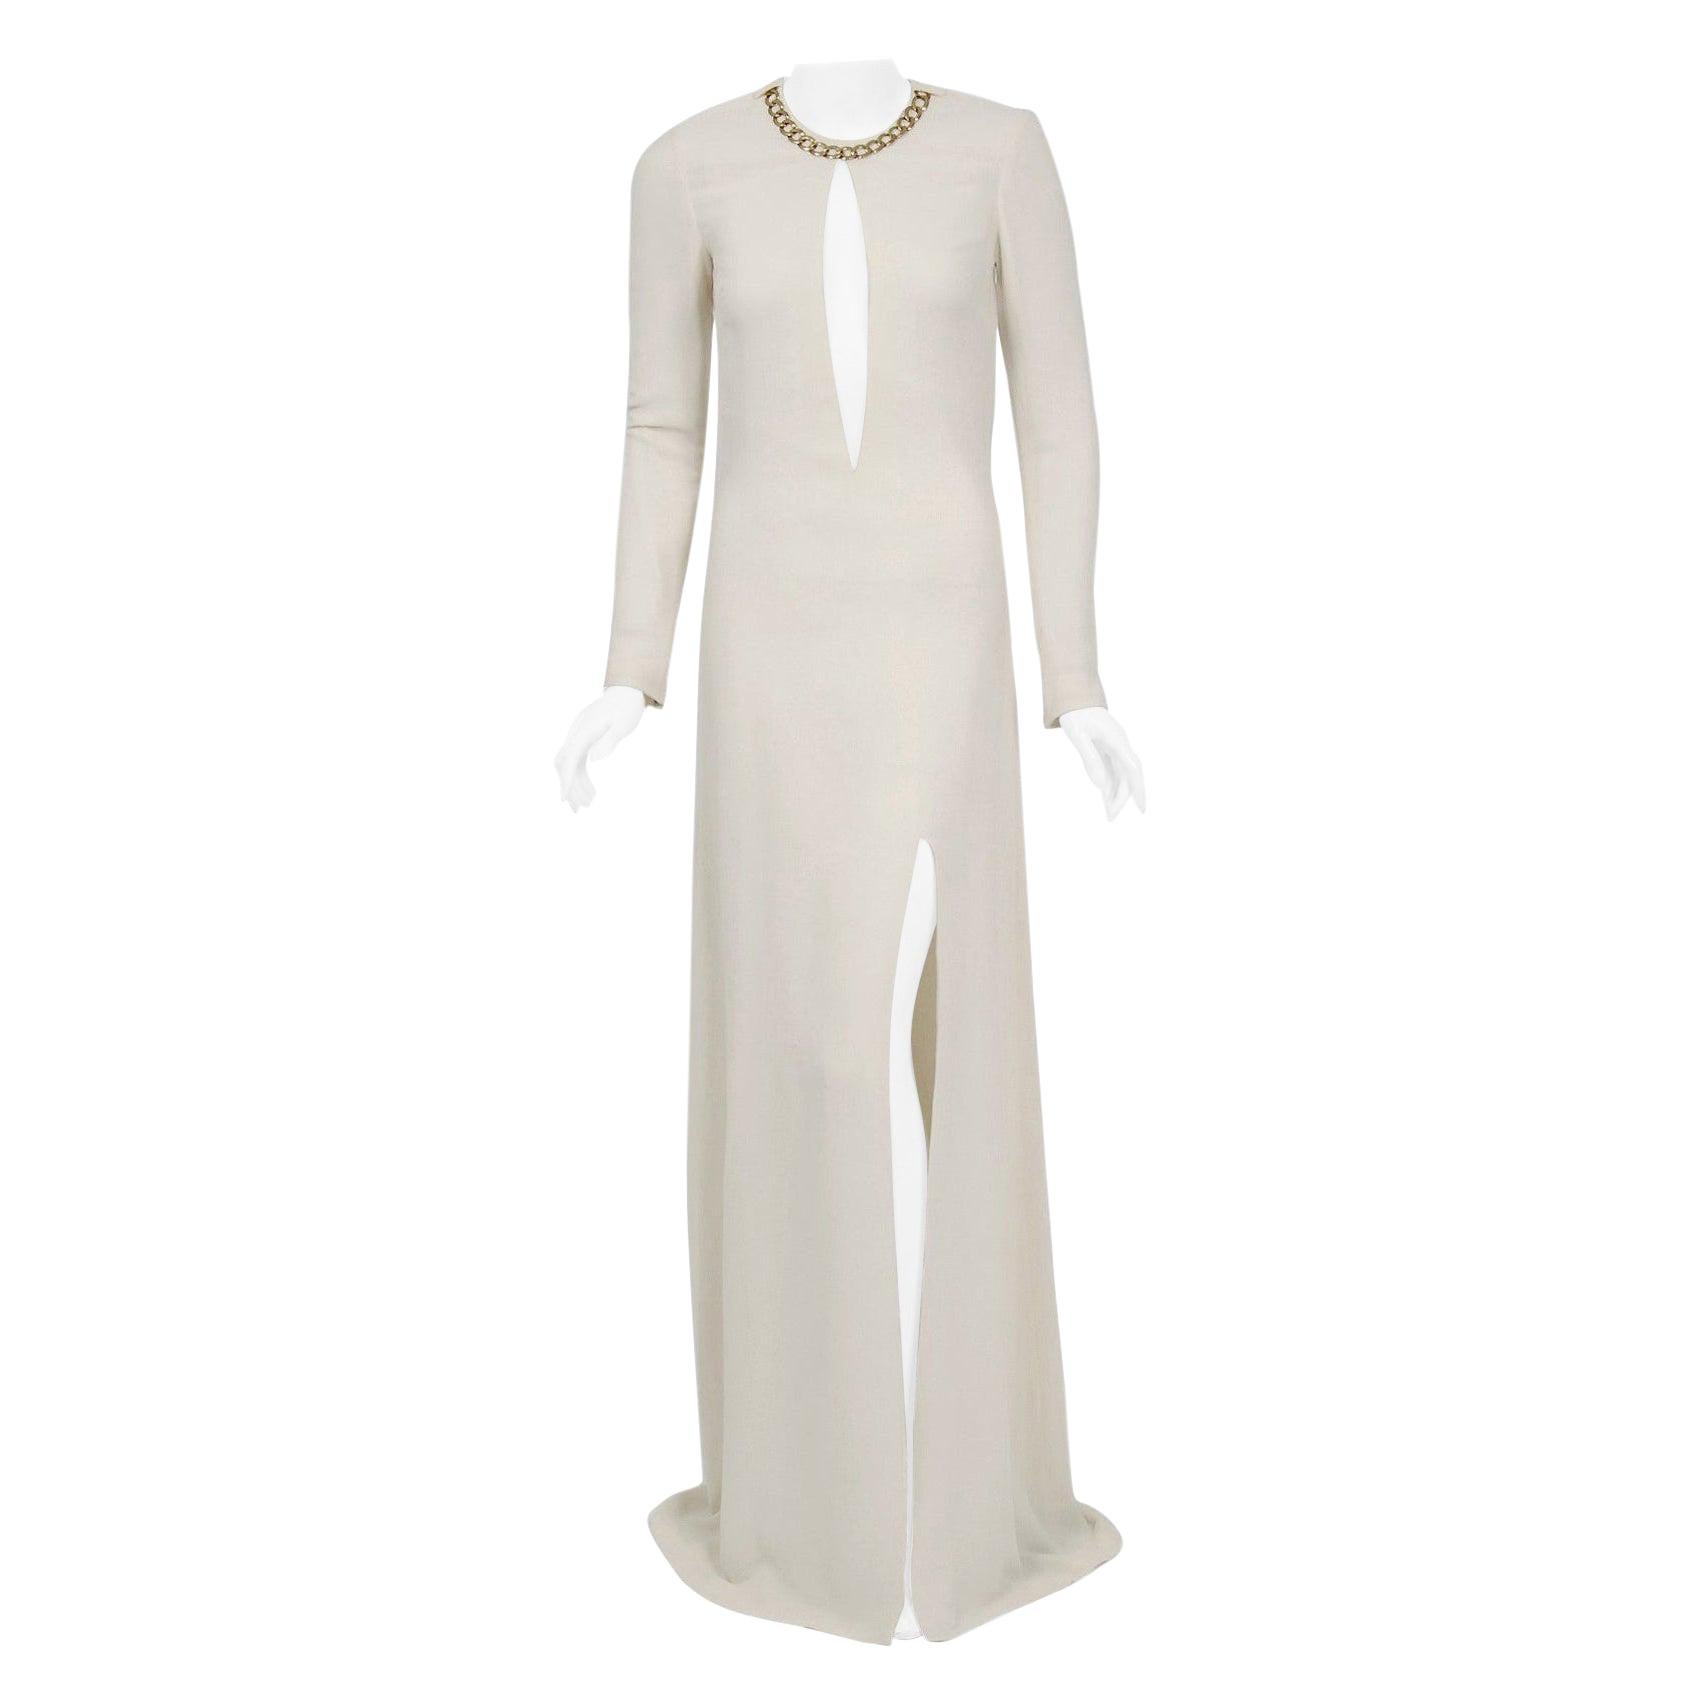 2006 Alexander McQueen Documented White Silk Crepe Chain Plunge High-Slit Gown